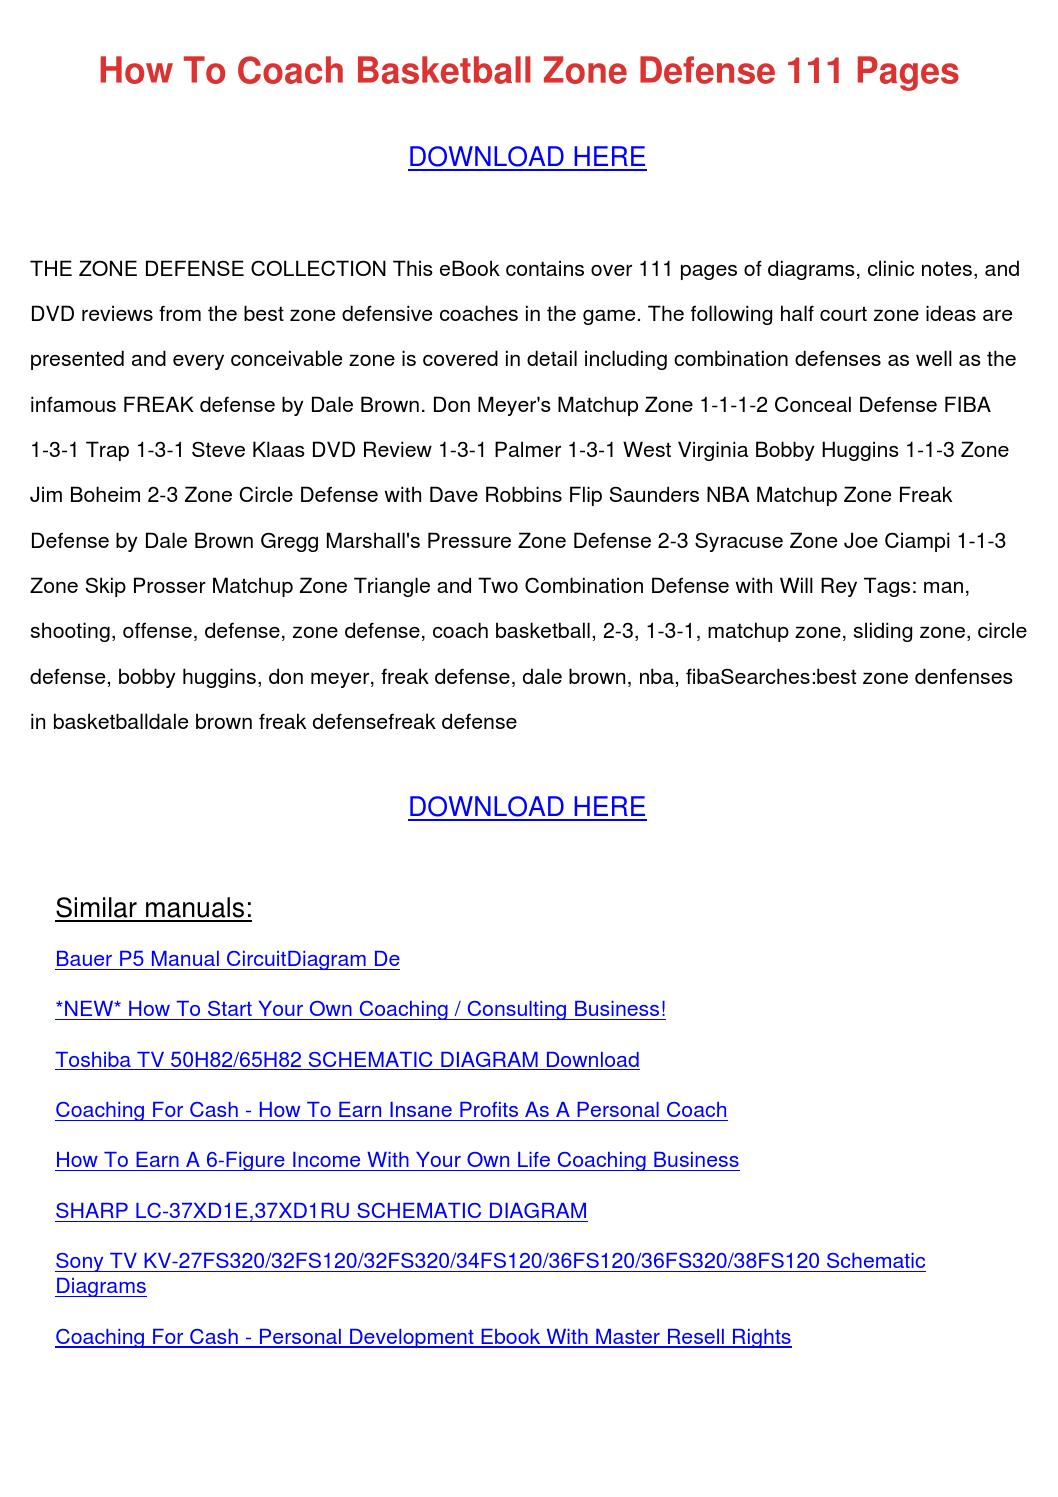 How To Coach Basketball Zone Defense 111 Page By Tillystricklin Issuu 1997 Toyota Corolla Electrical Wiring And Circuit Diagram Document